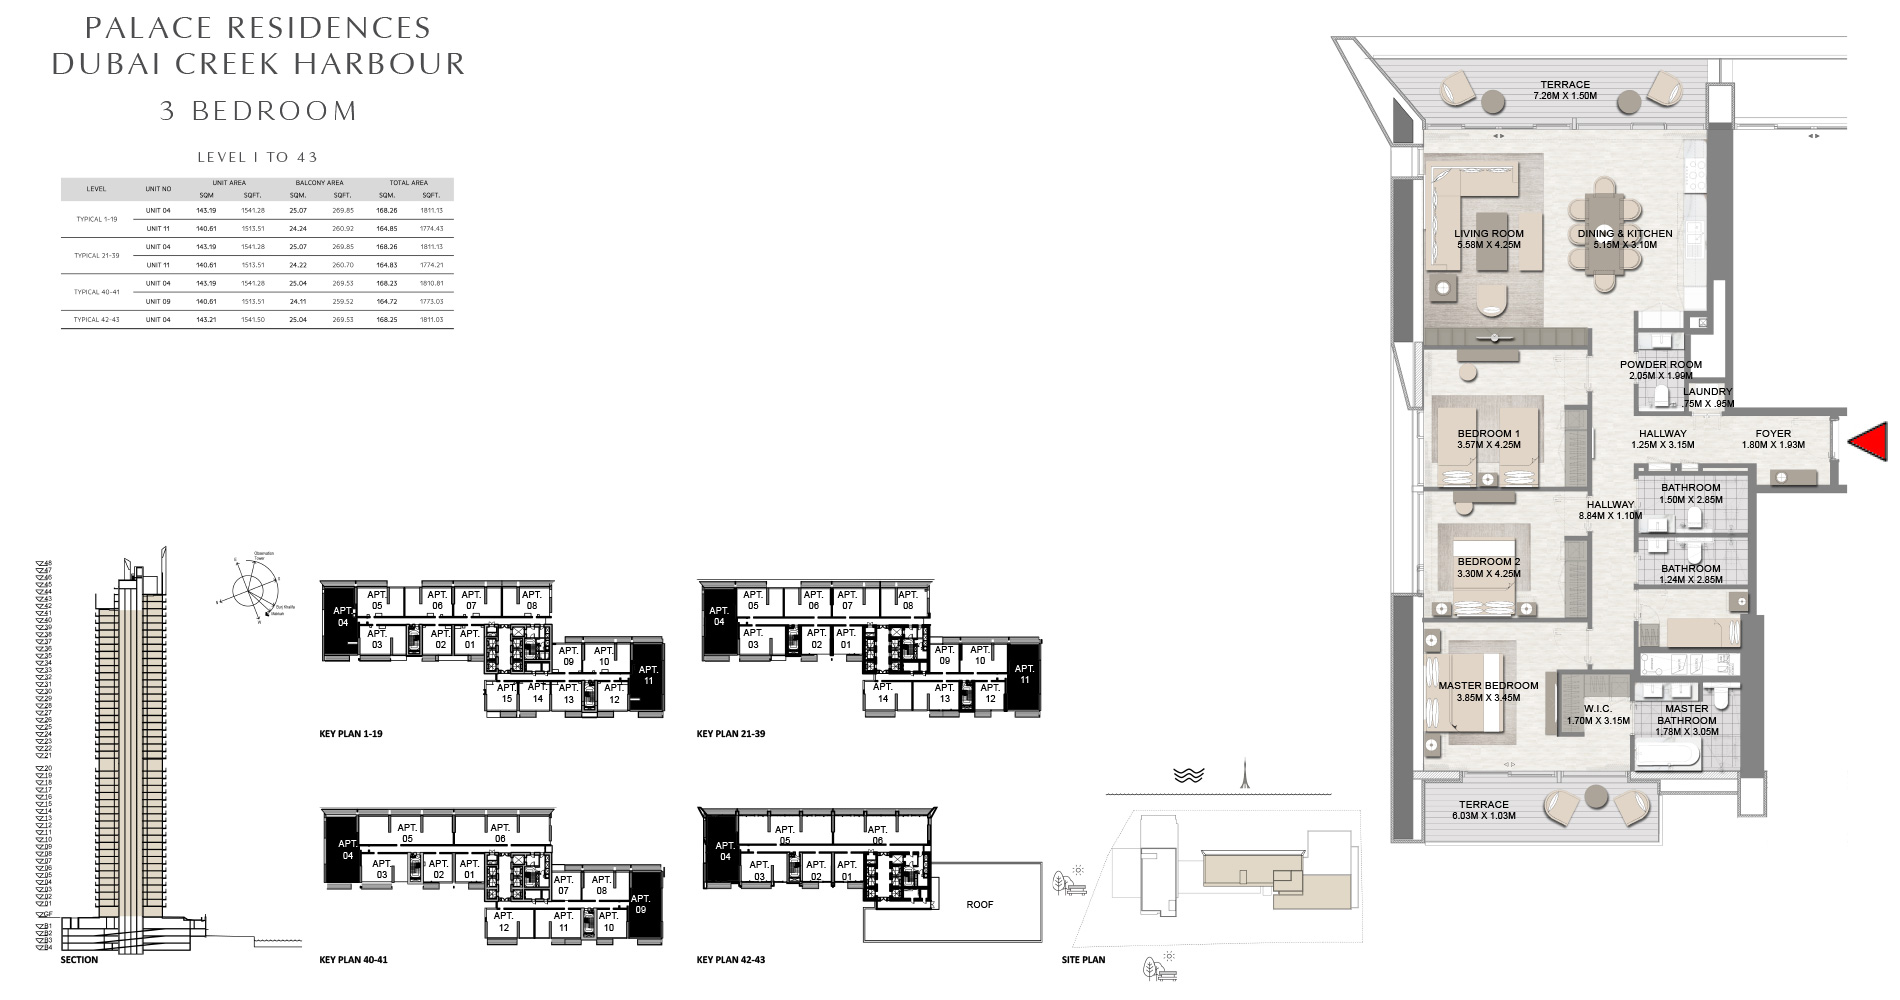 Floor Plan - Emaar Palace Residences By Address Hotels + Resorts